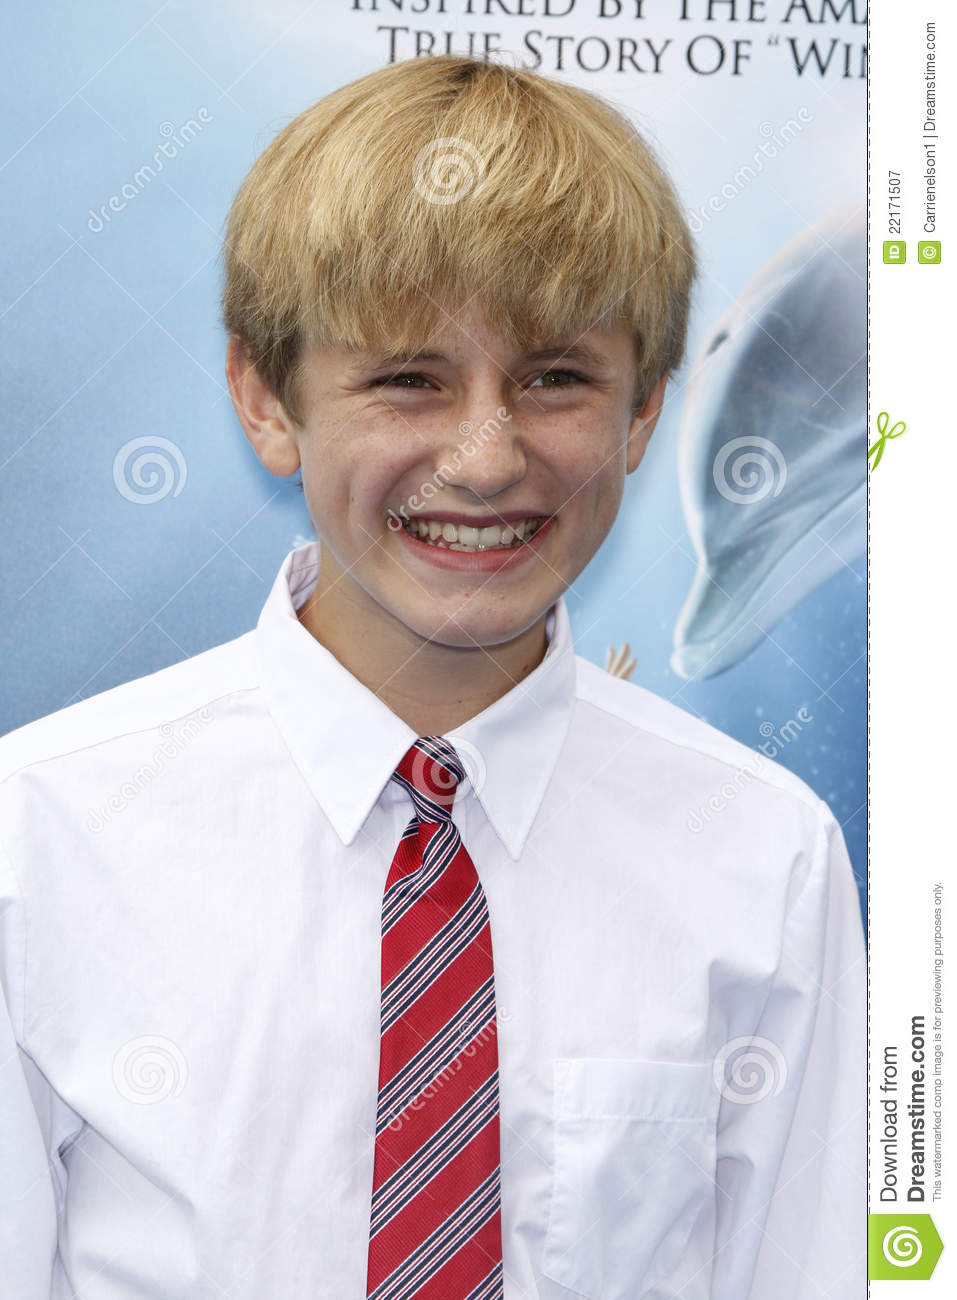 nathan gamble interview